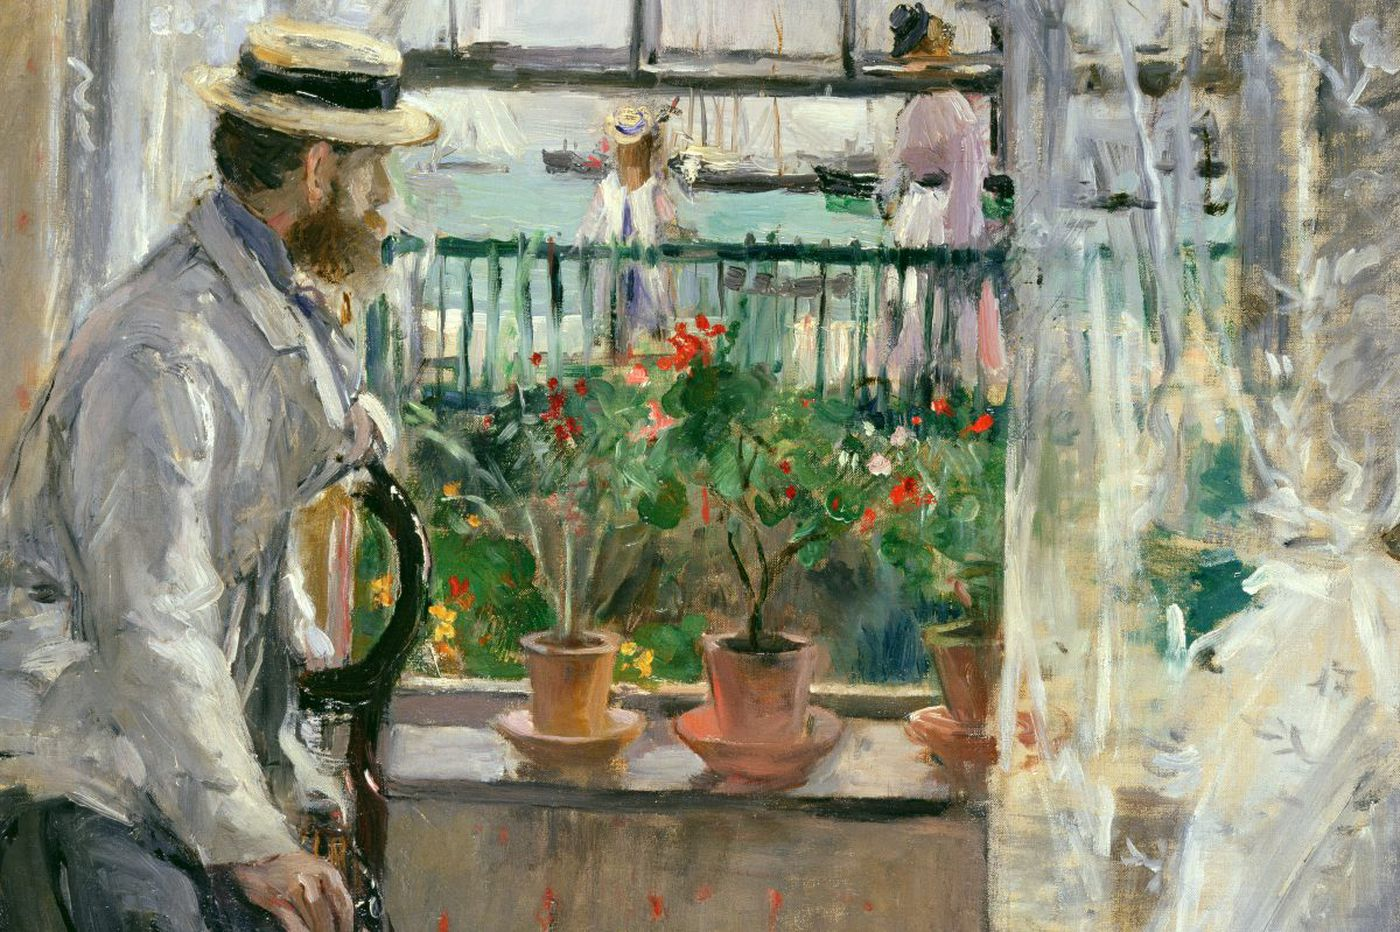 Important Berthe Morisot exhibition of impressionist paintings coming to Barnes Foundation in 2018